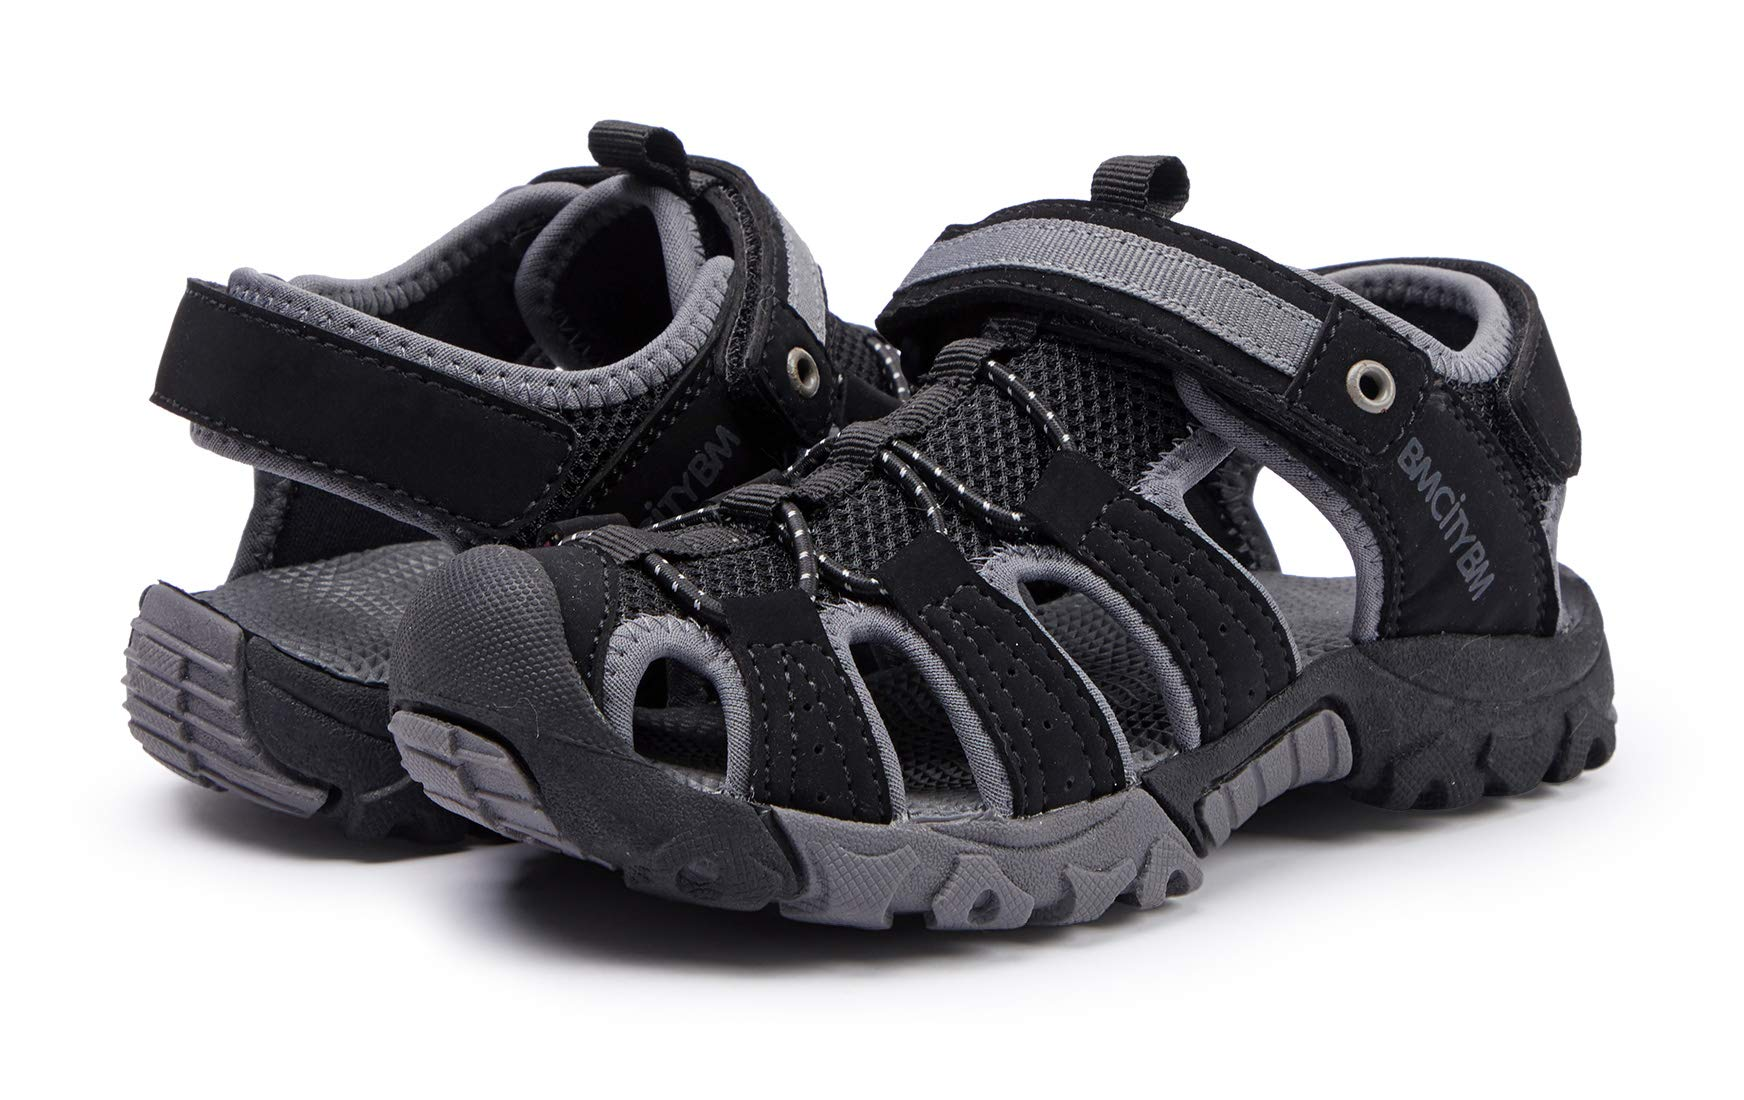 BMCiTYBM Girls Boys Hiking Sport Sandals Toddler Kid Closed Toe Water Shoes Black Size 3 by BMCiTYBM (Image #4)